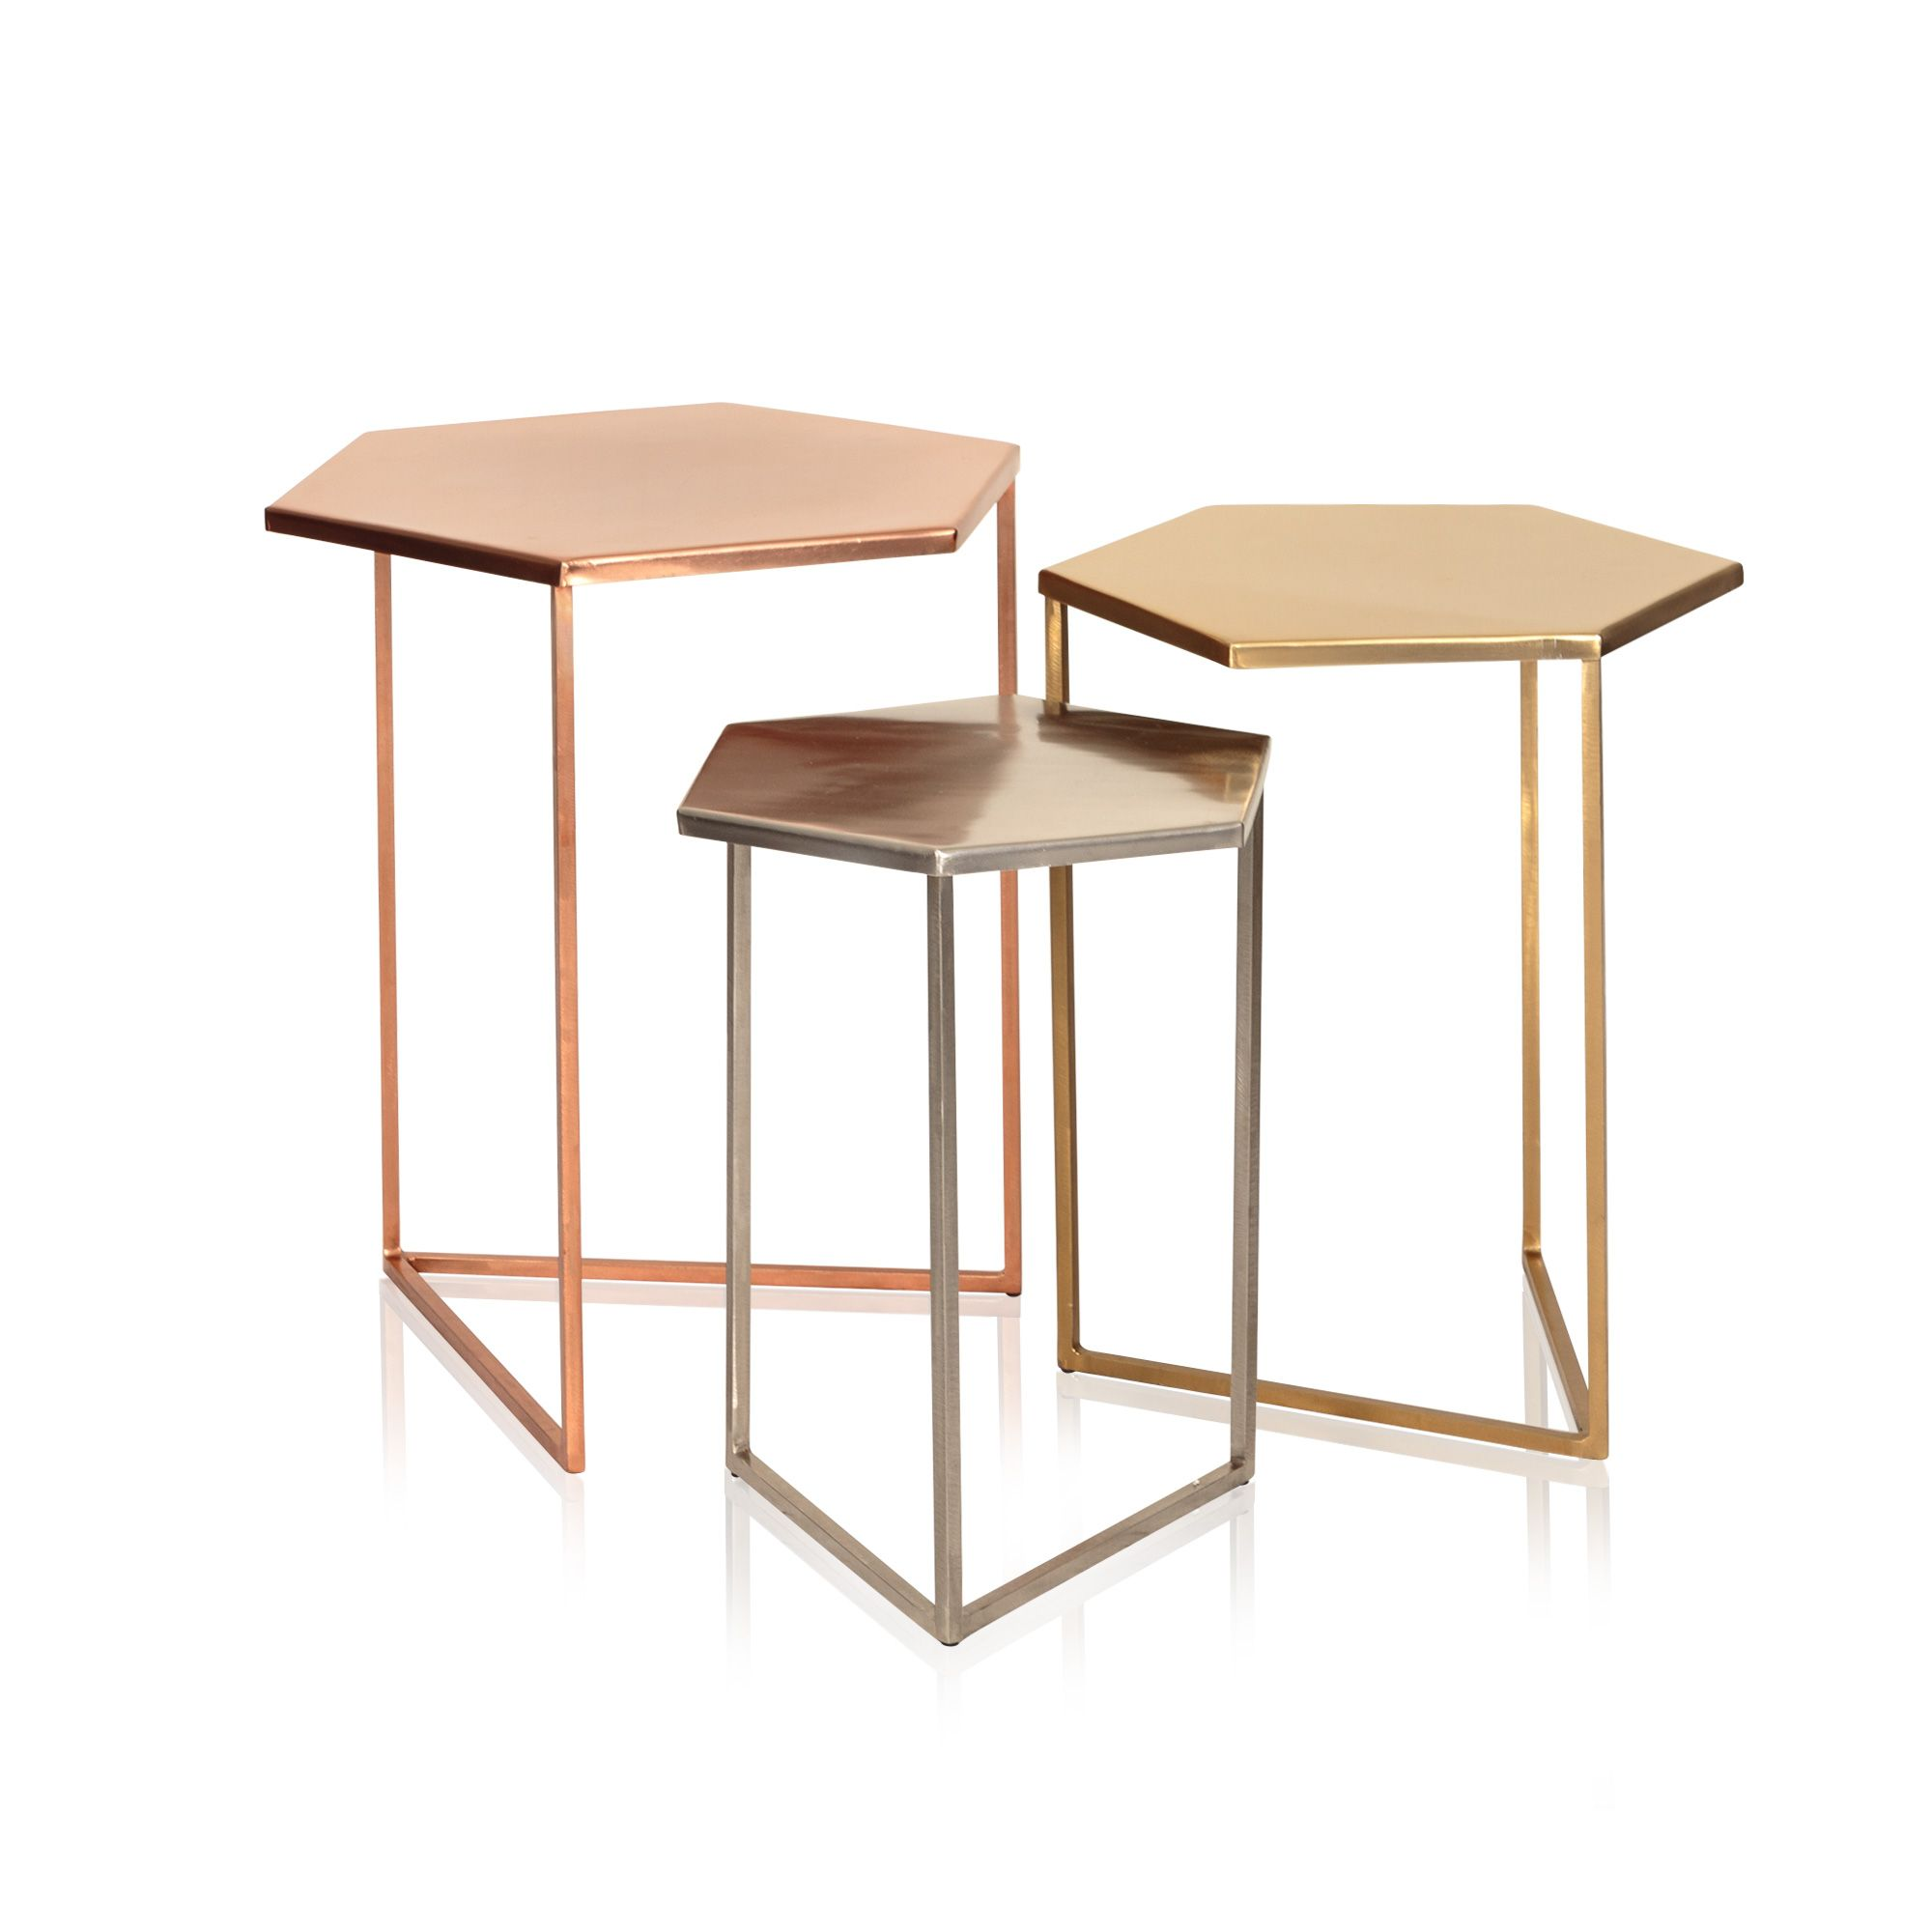 Buy The Set Of Three Hexagon Metallic Nesting Tables At Oliver Bonas. We  Deliver Homeware